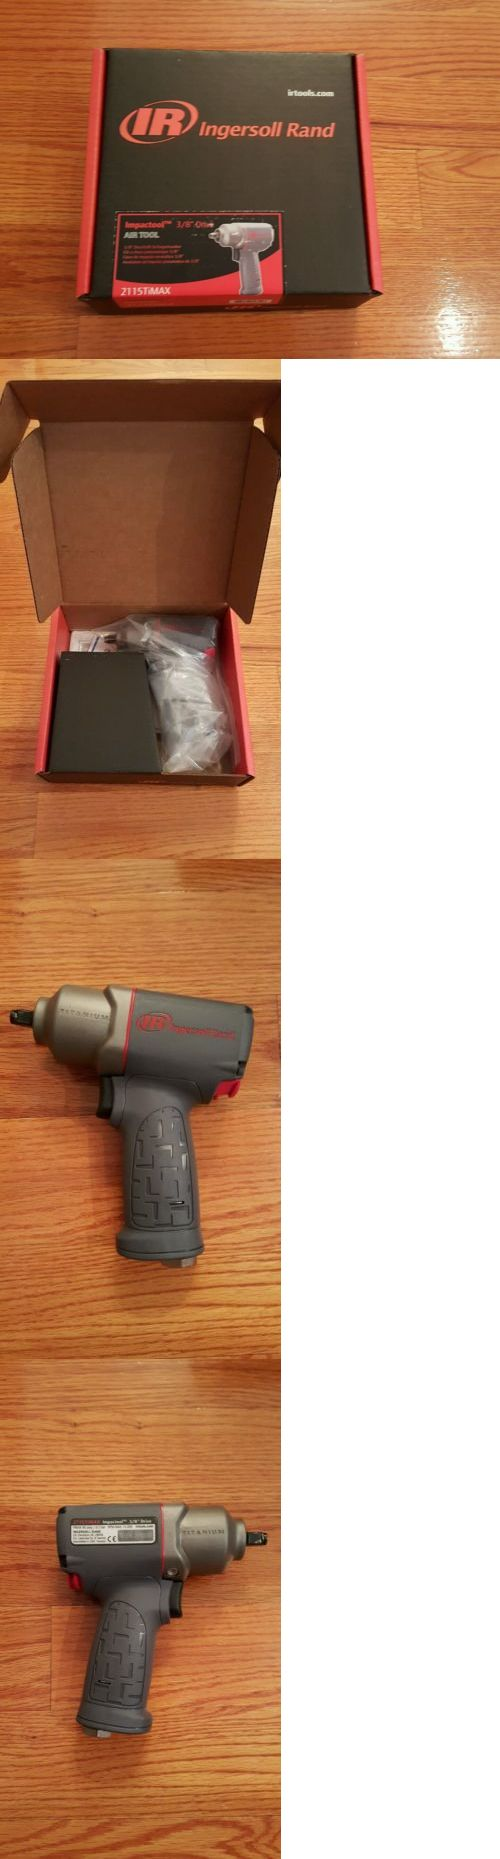 Wrenches 22663: New In Box Ingersoll Rand 2115Timax 3 8 Titanium Air Impact Wrench Gun Tool -> BUY IT NOW ONLY: $190 on eBay!